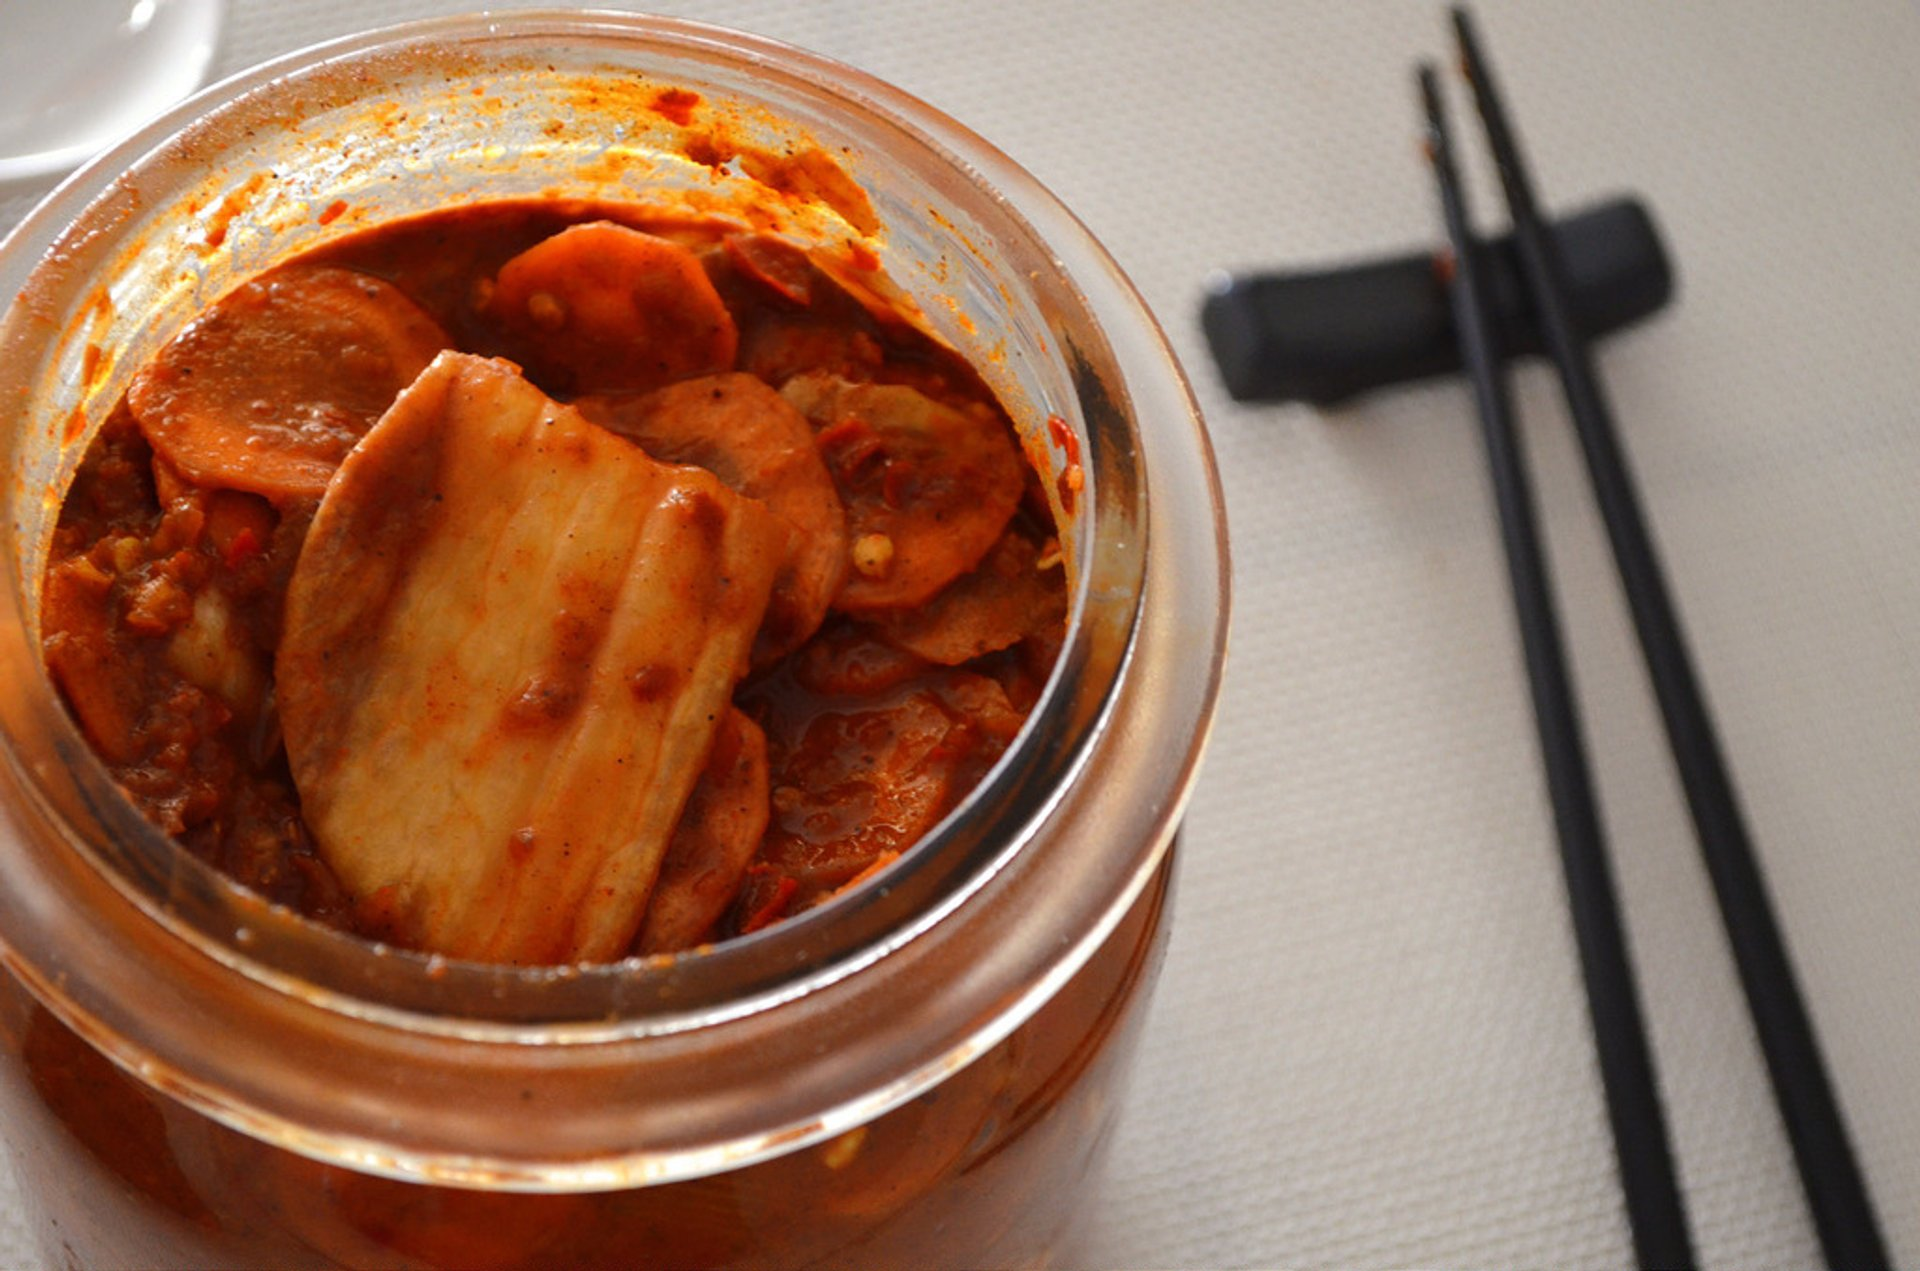 Kimchi in South Korea 2020 - Best Time